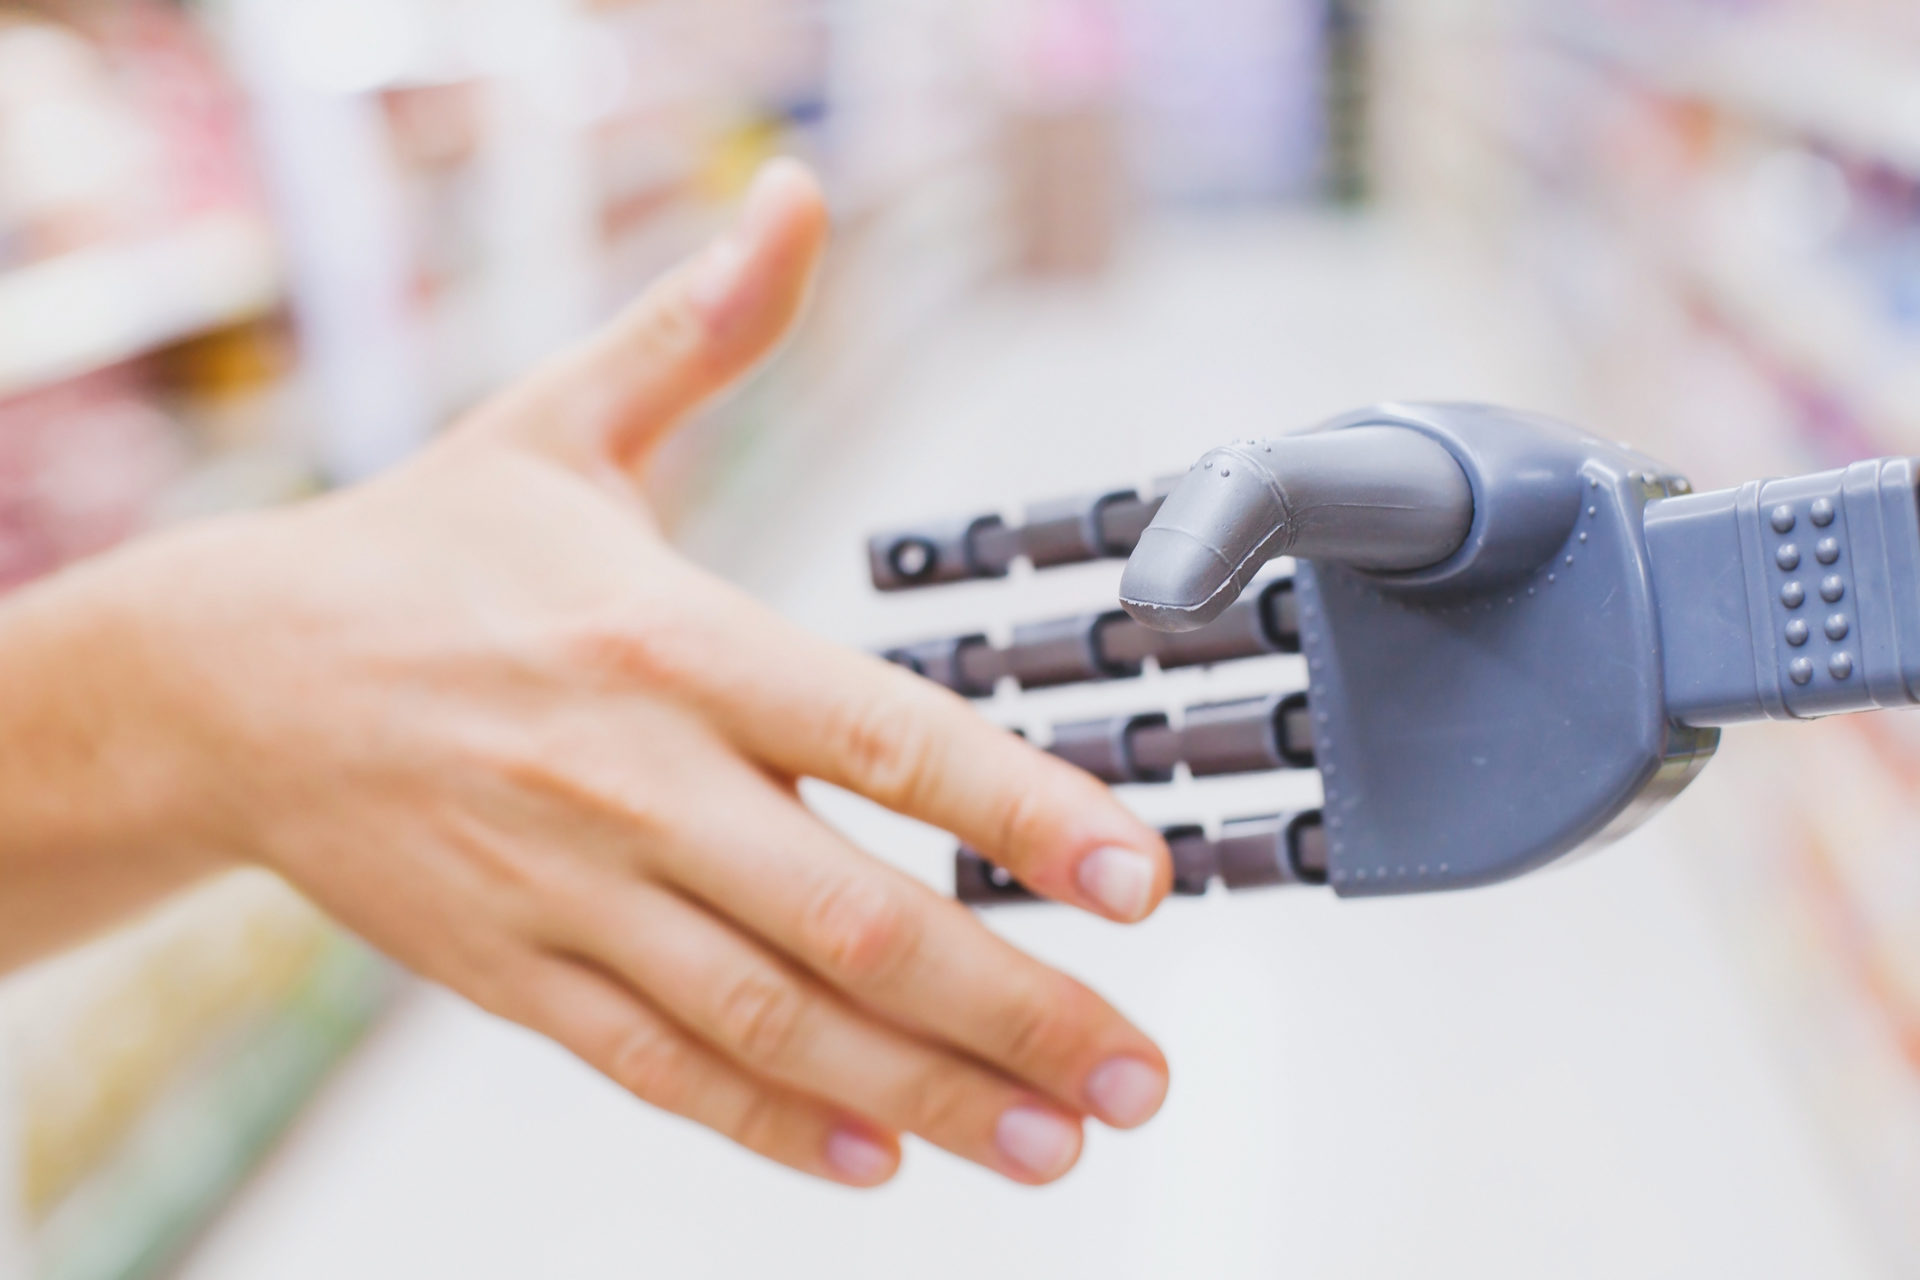 robot and human hands in handshake, high tech